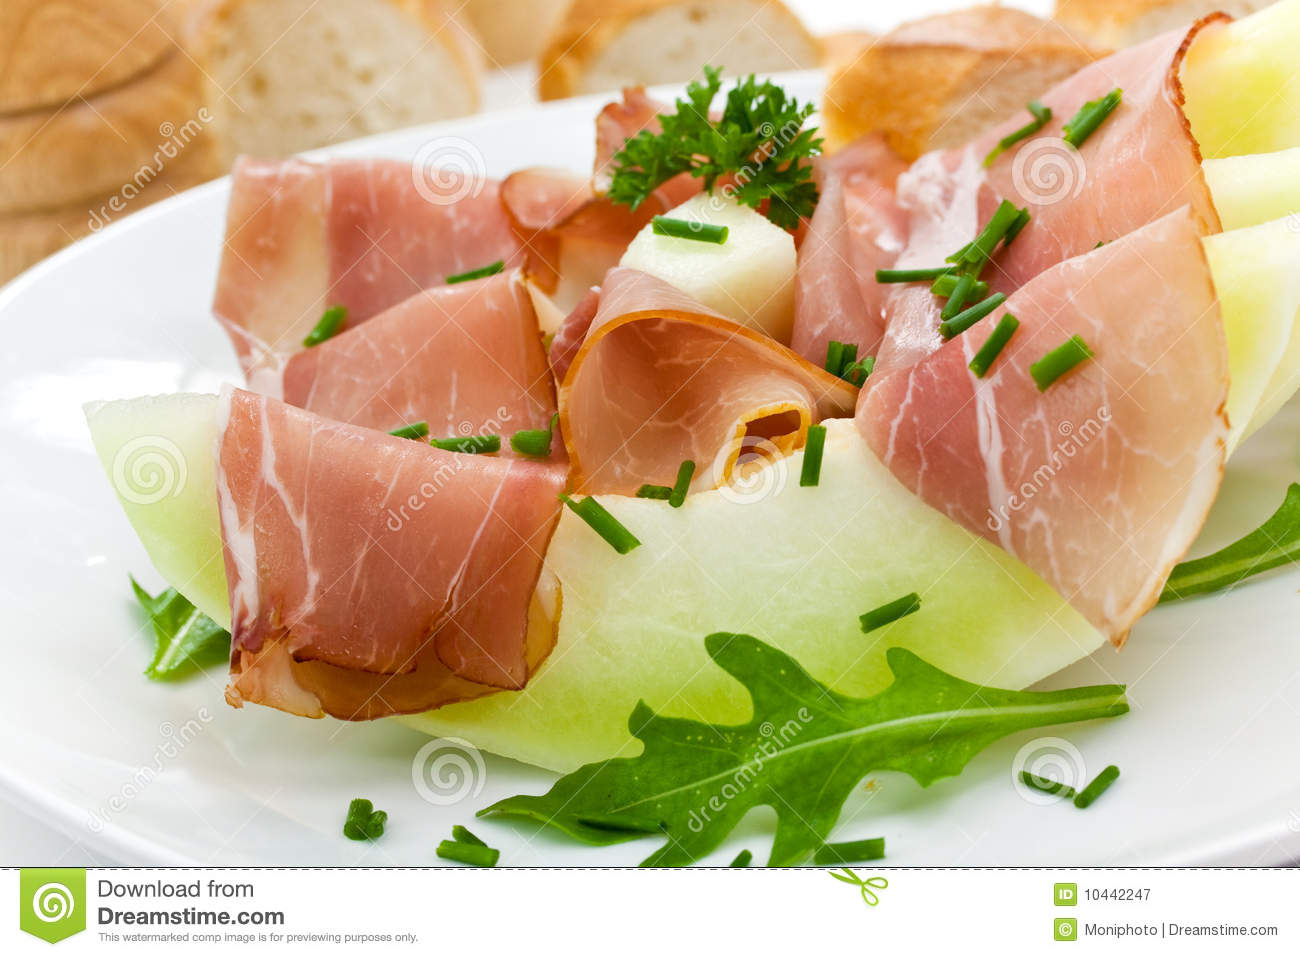 Prosciutto Di Parma Ham And Three Slice Of Melon Royalty Free Stock ...